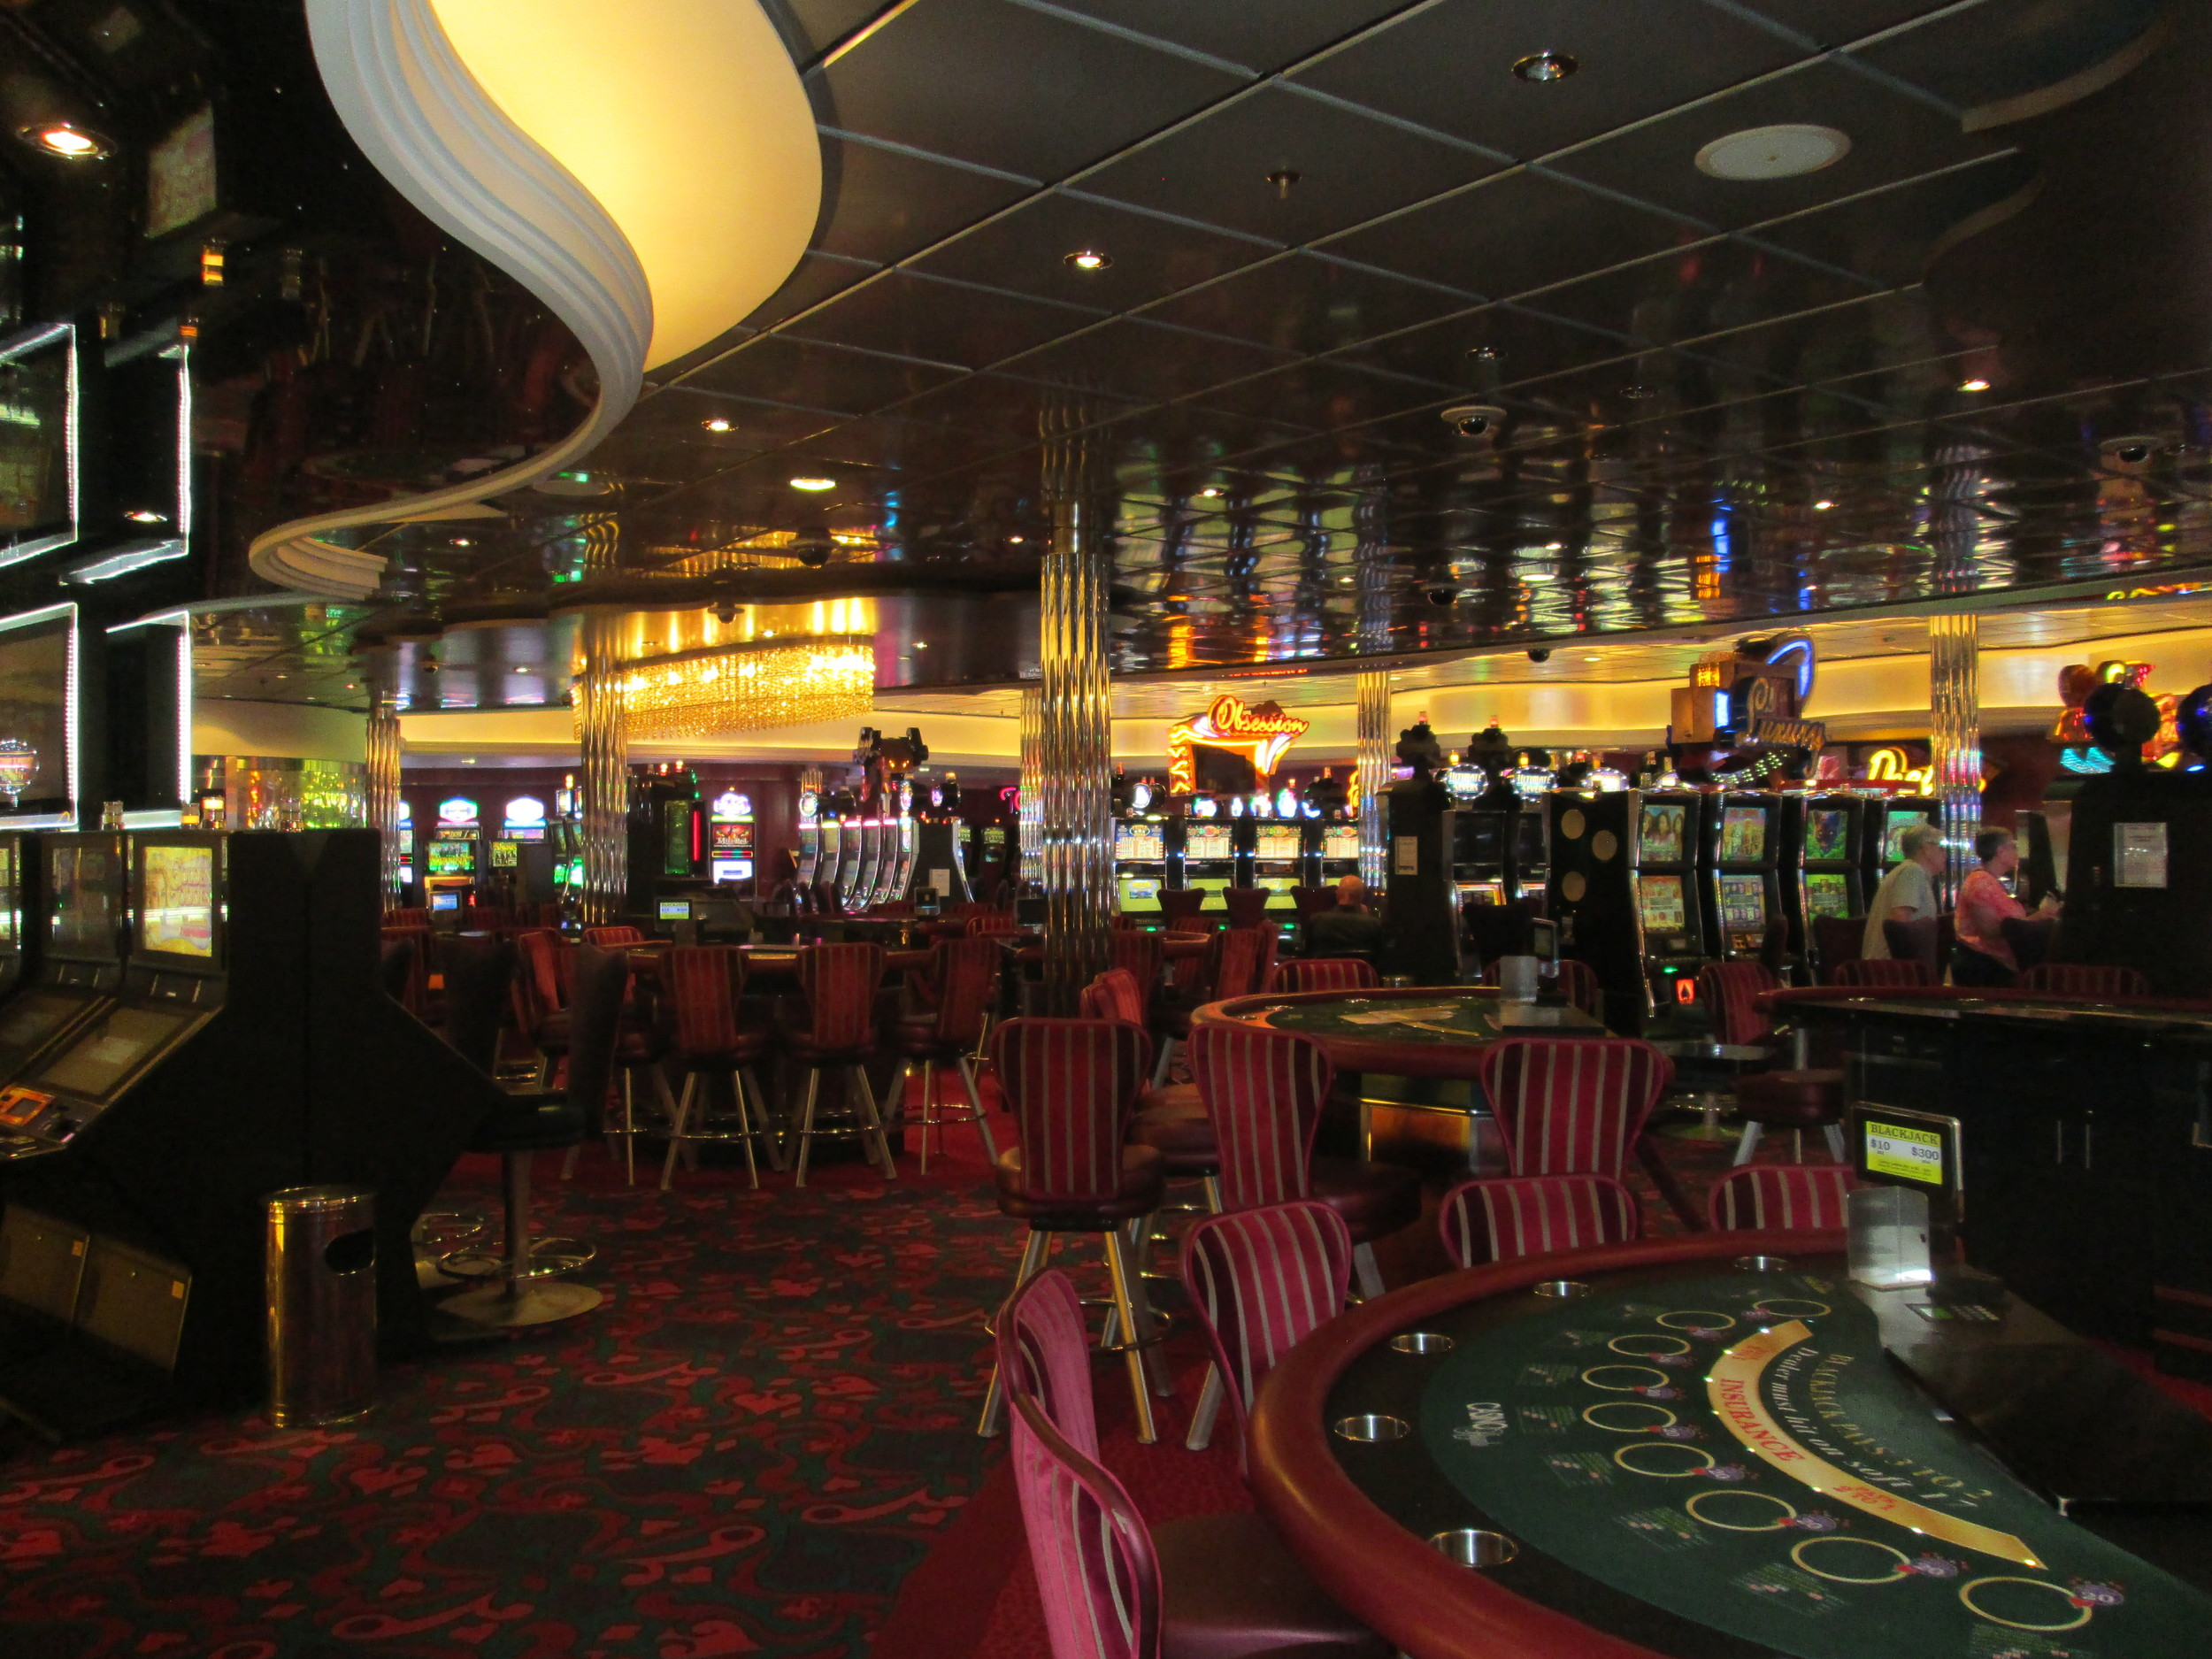 There is also a rather impressive casino on board if you are interested in hitting the slots